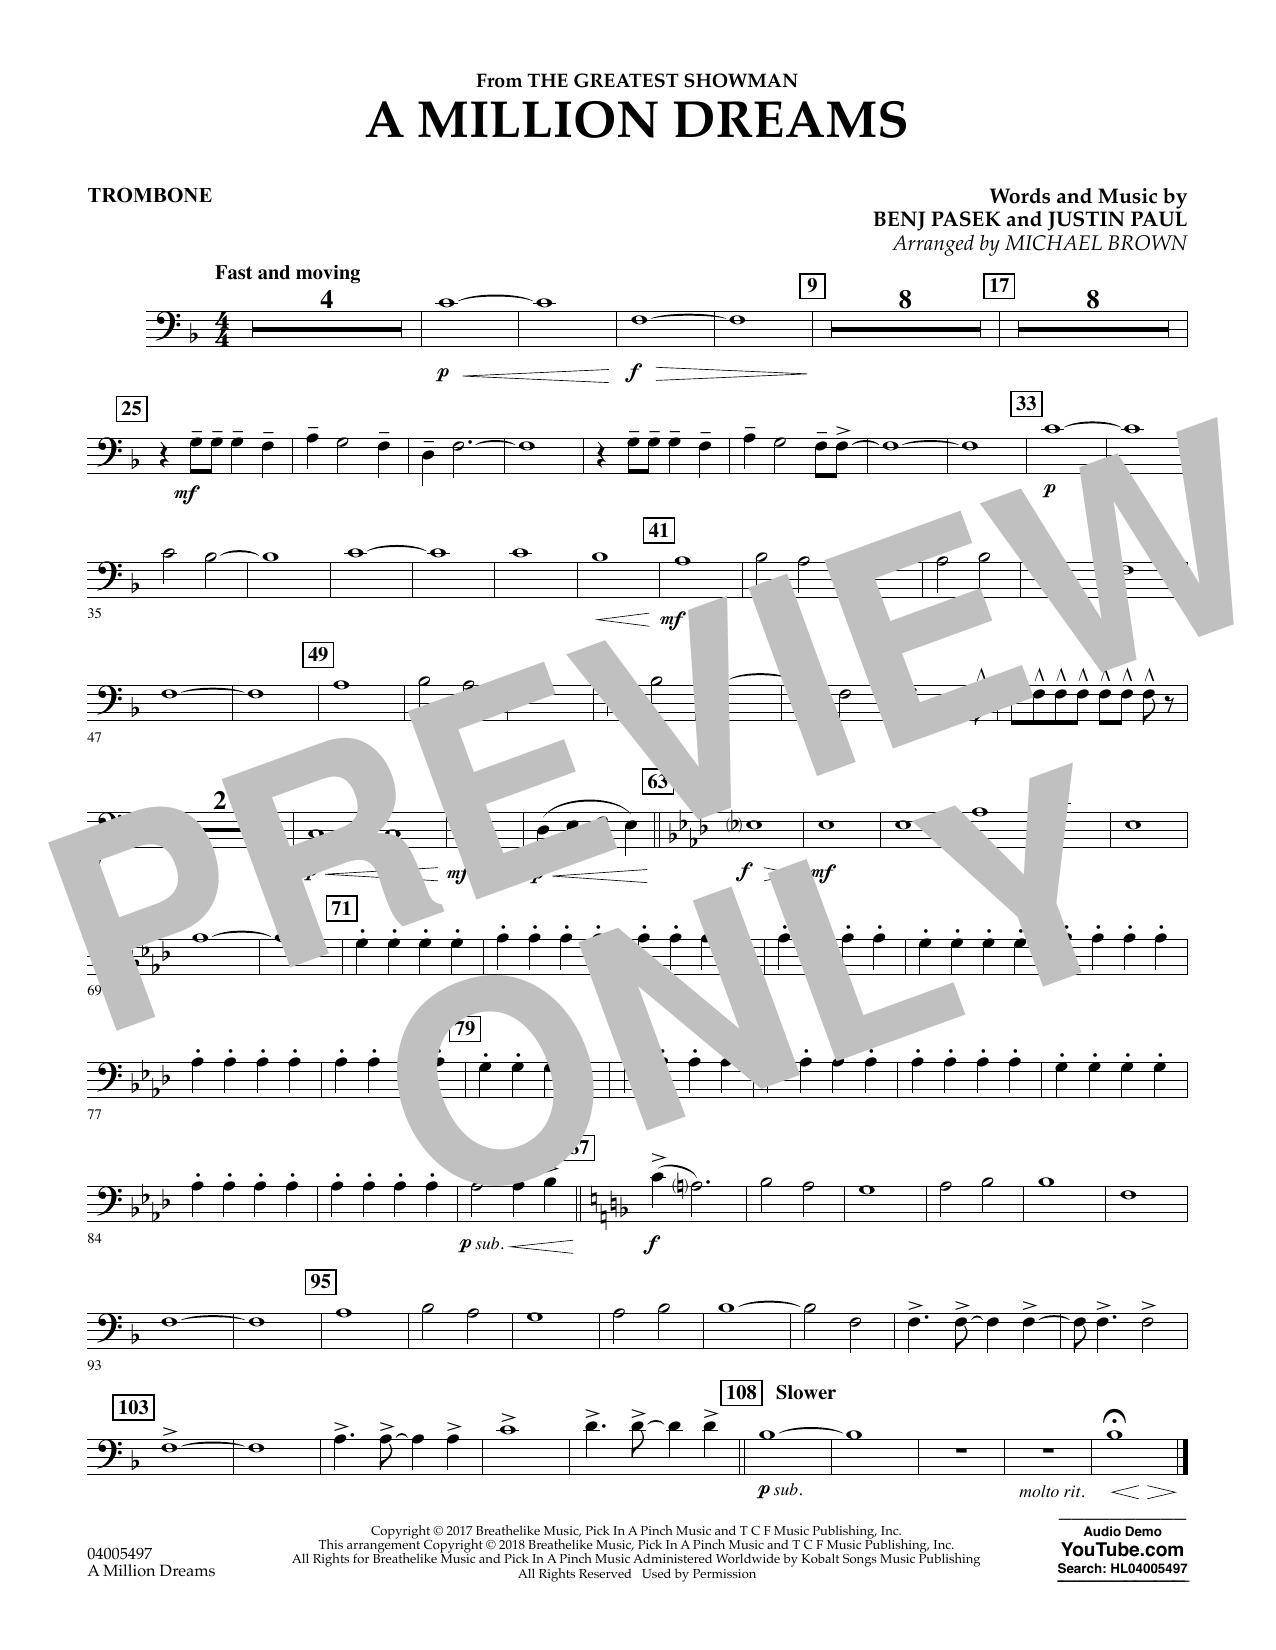 Pasek & Paul A Million Dreams (from The Greatest Showman) (arr. Michael Brown) - Trombone sheet music notes and chords. Download Printable PDF.